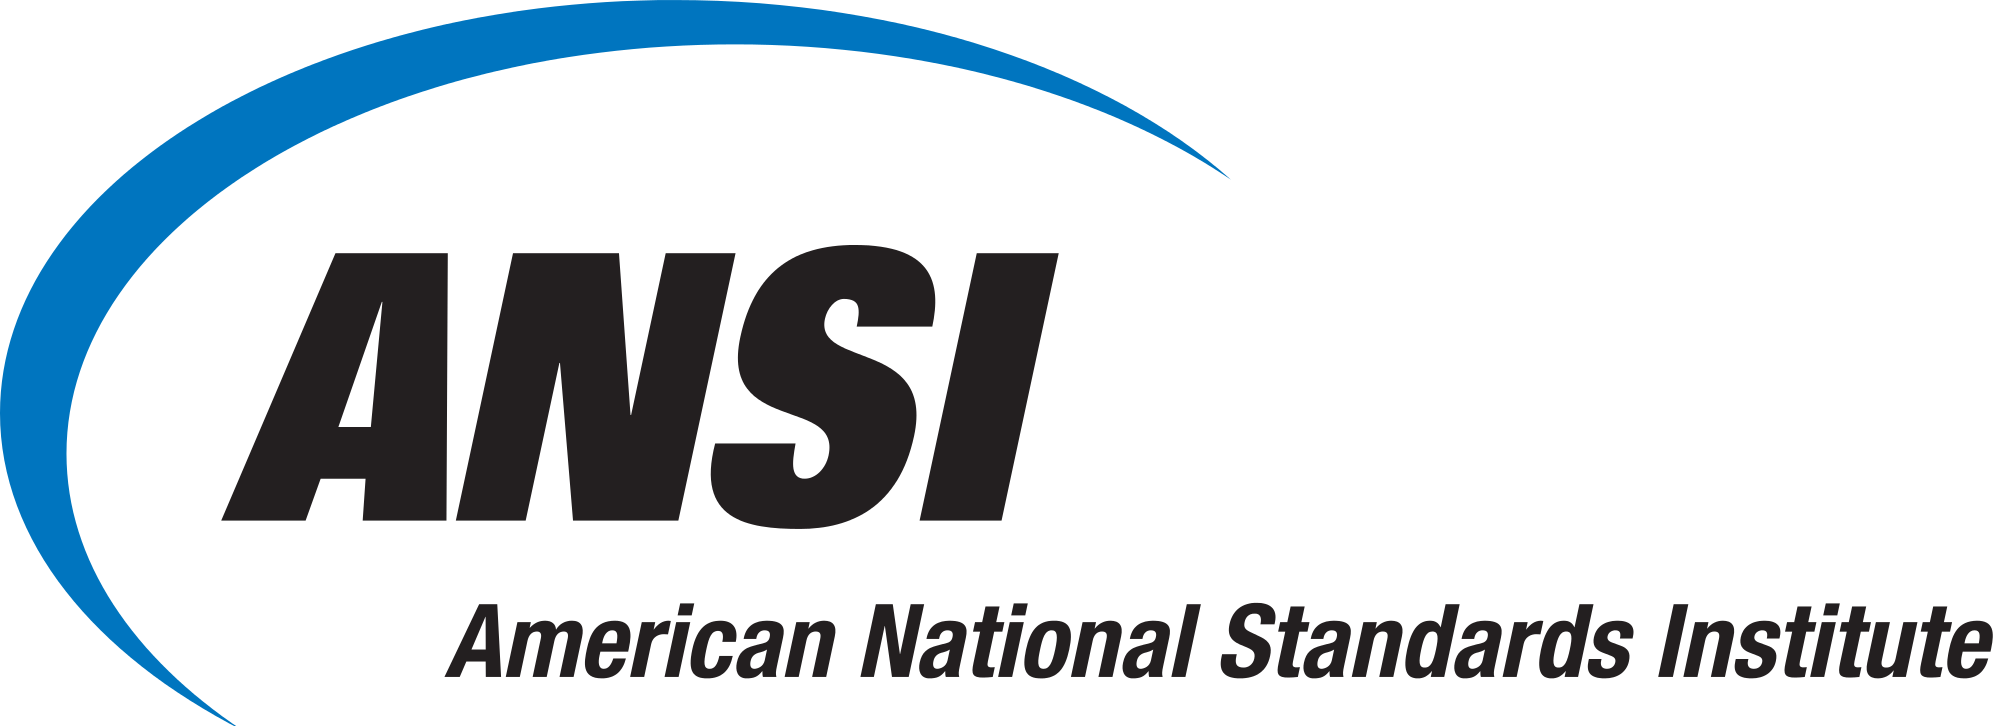 GME Supply is a proud member of the ANSI (the American National Standards Institute) Z359 committee